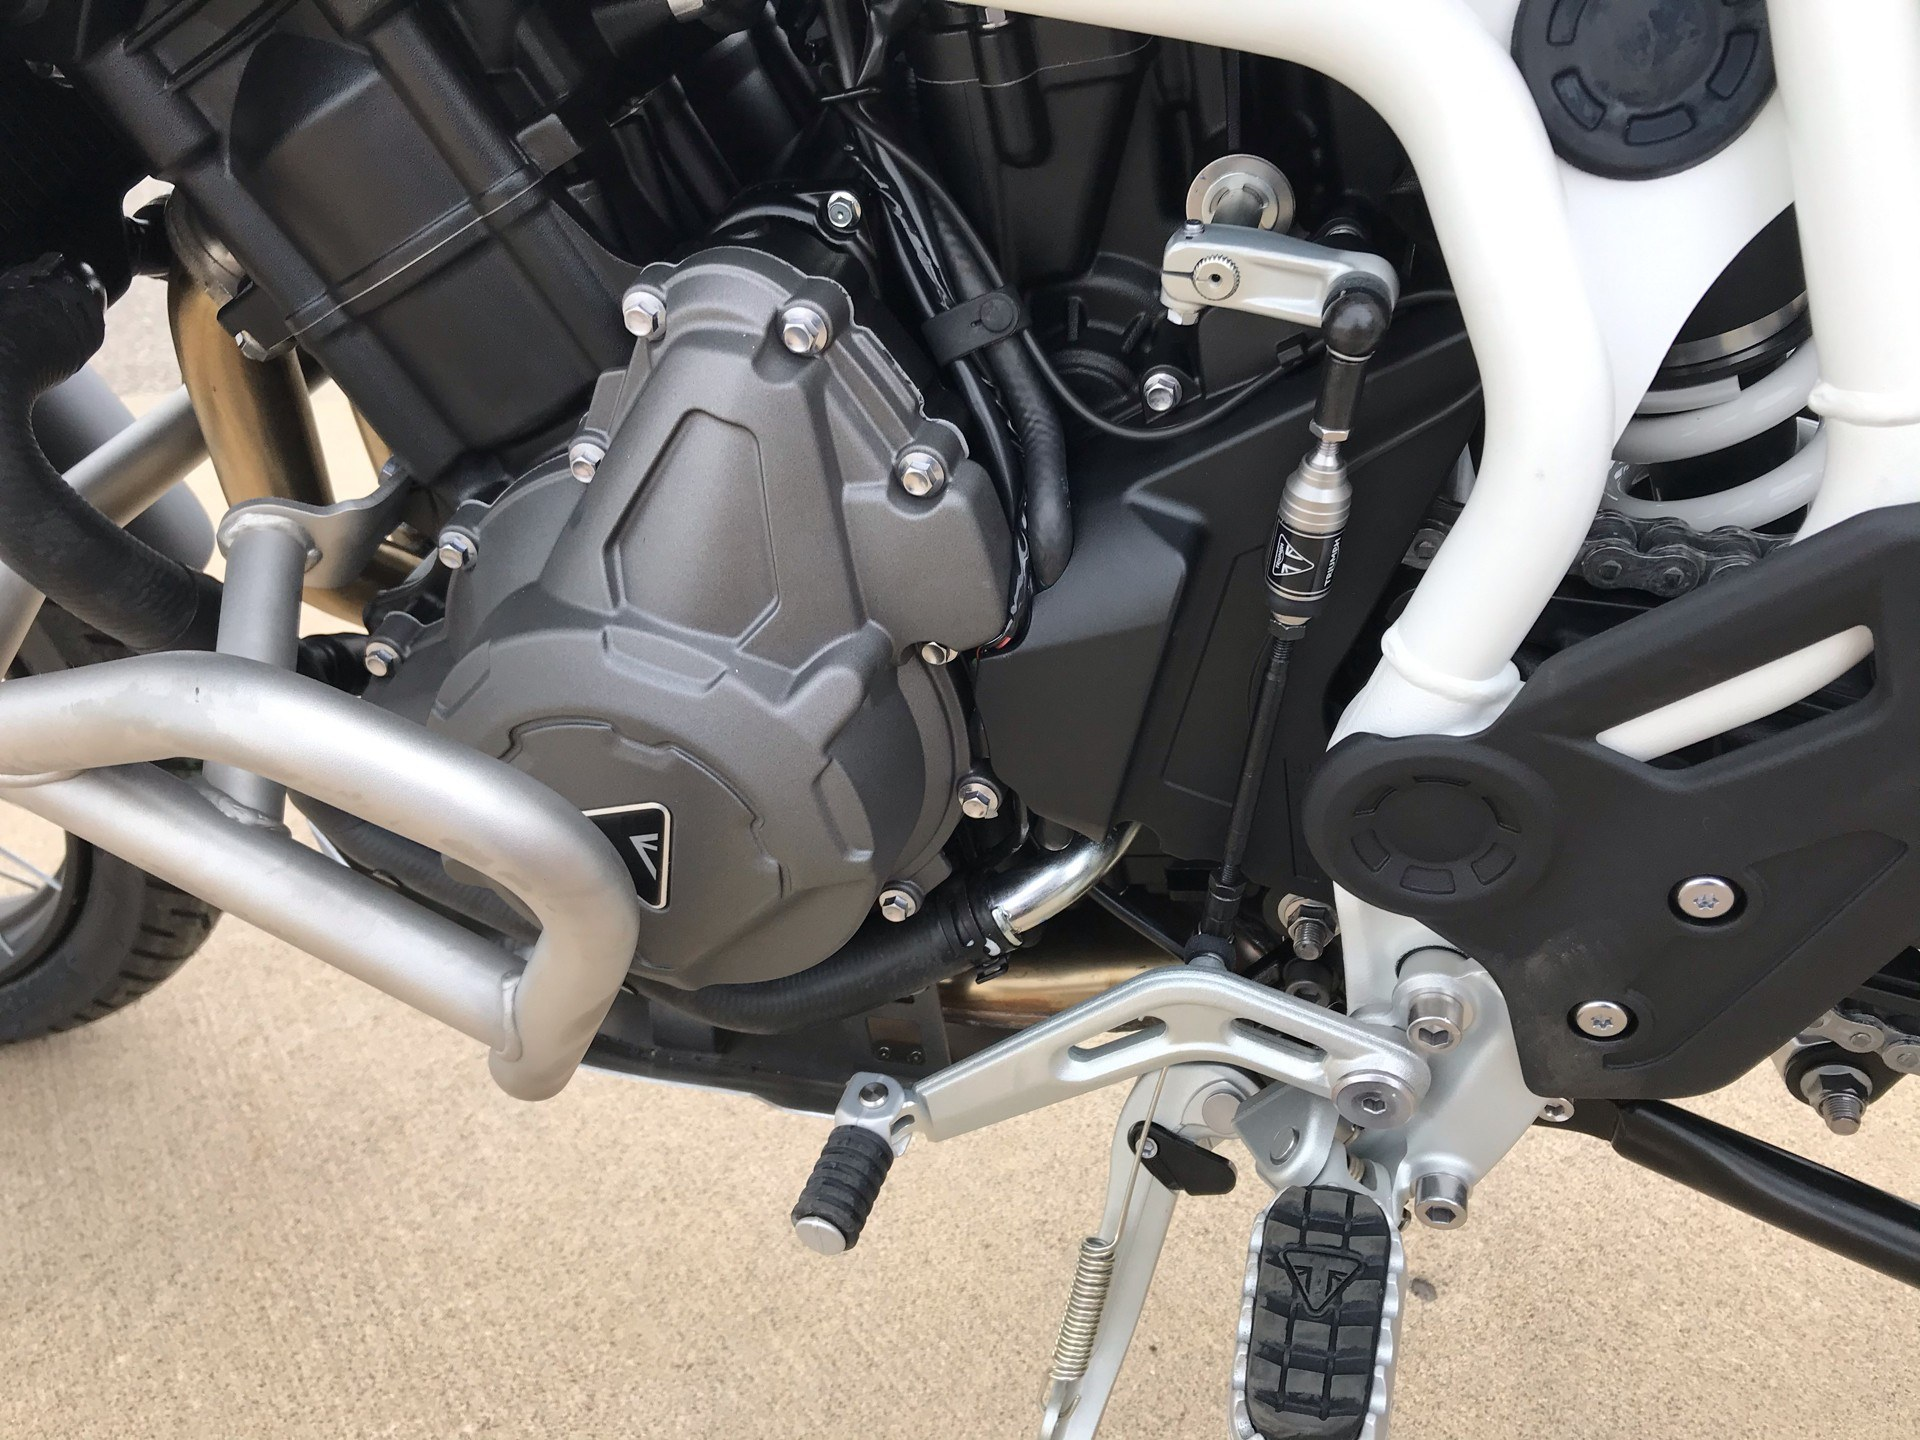 2020 Triumph Tiger 900 Rally Pro in Belle Plaine, Minnesota - Photo 10